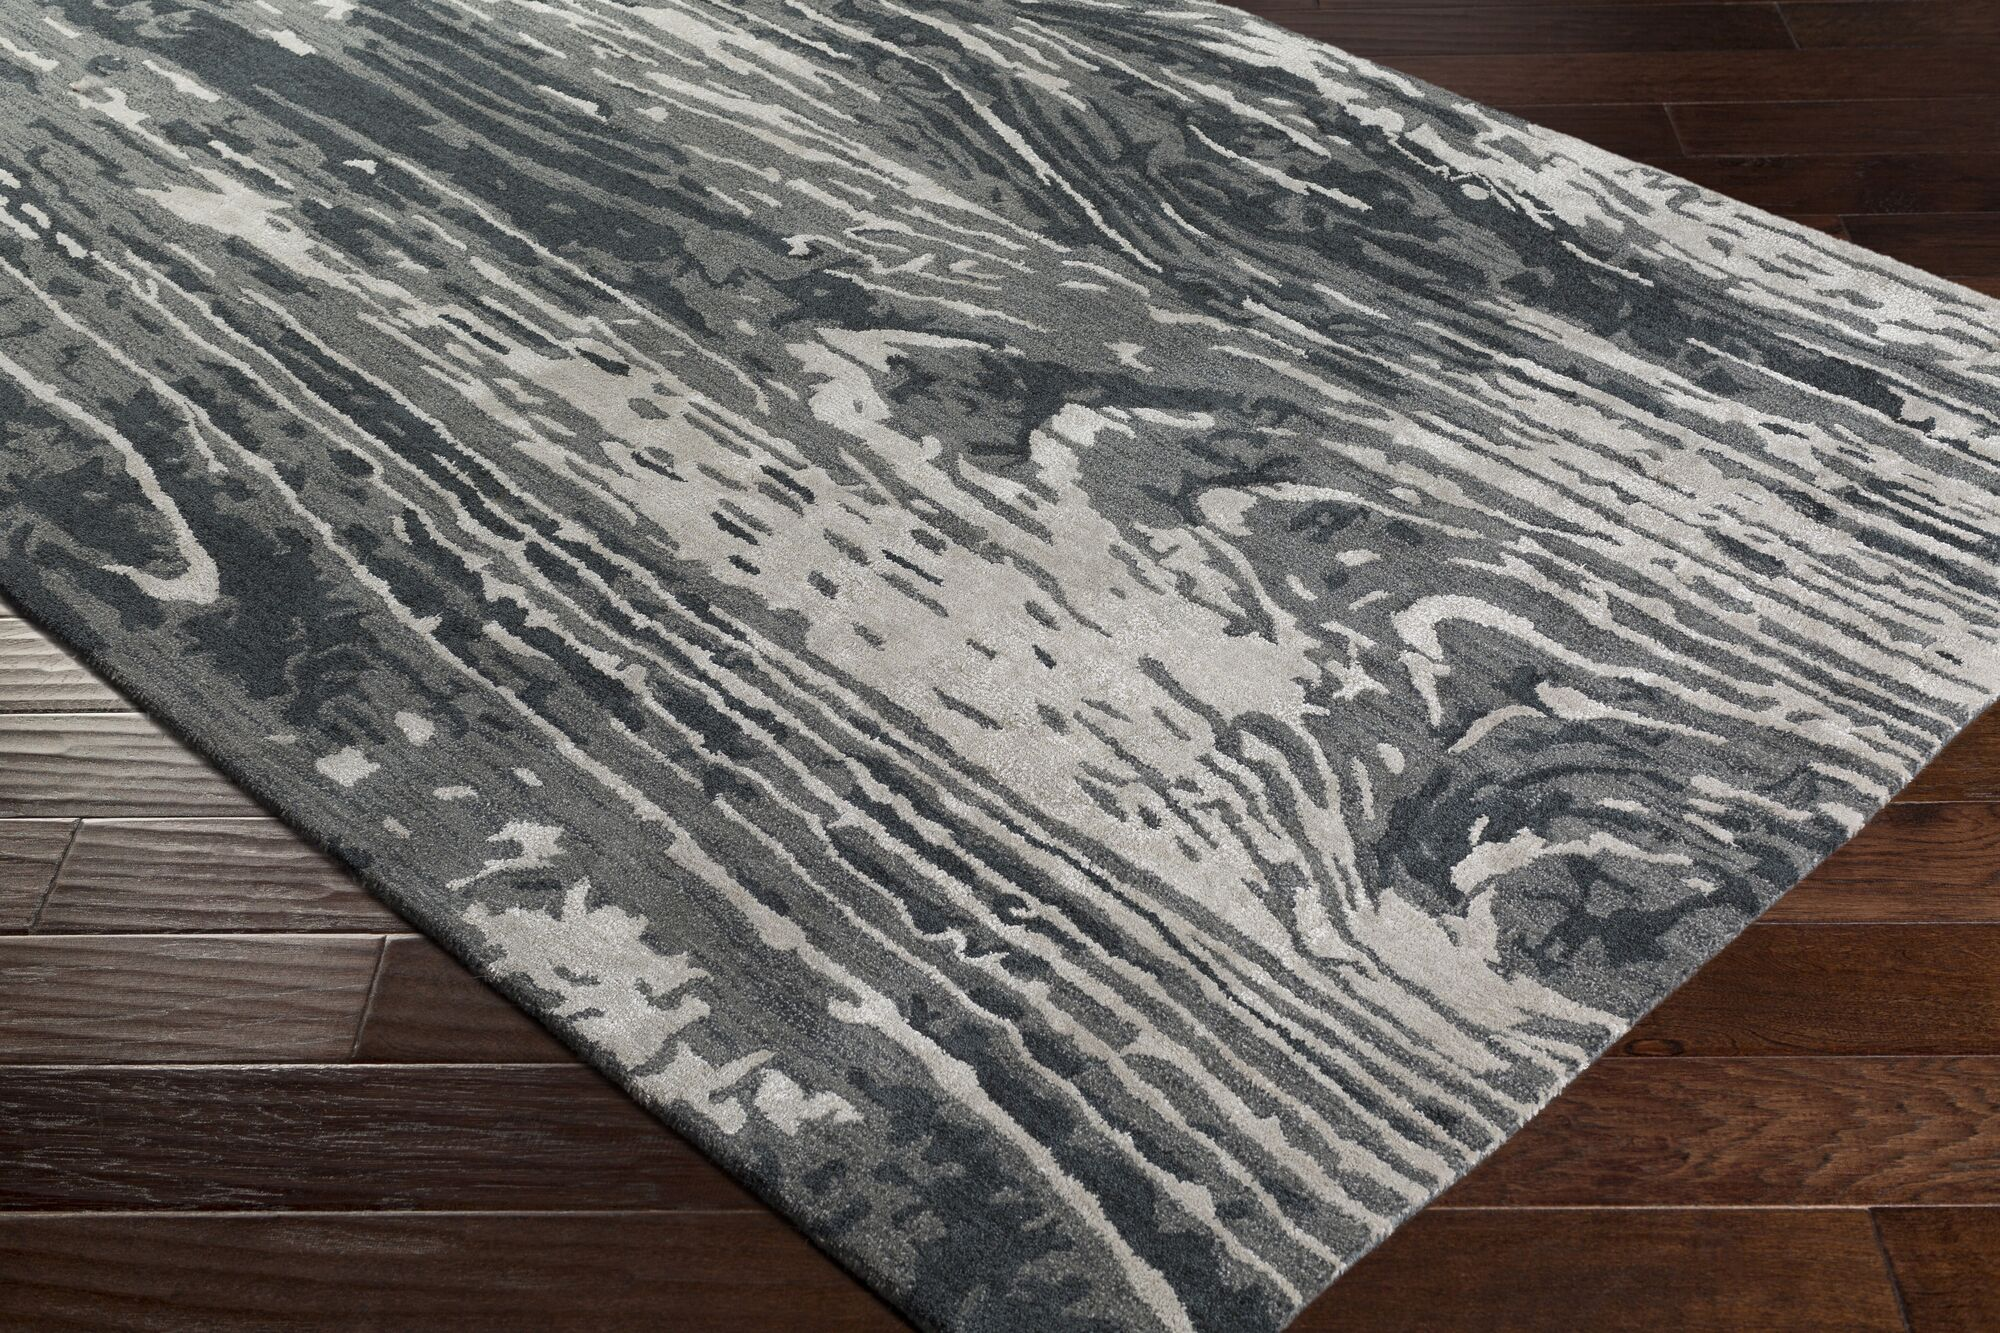 Fidela Abstract Hand Tufted Wool Charcoal/Taupe Area Rug Rug Size: Rectangle 9' x 13'